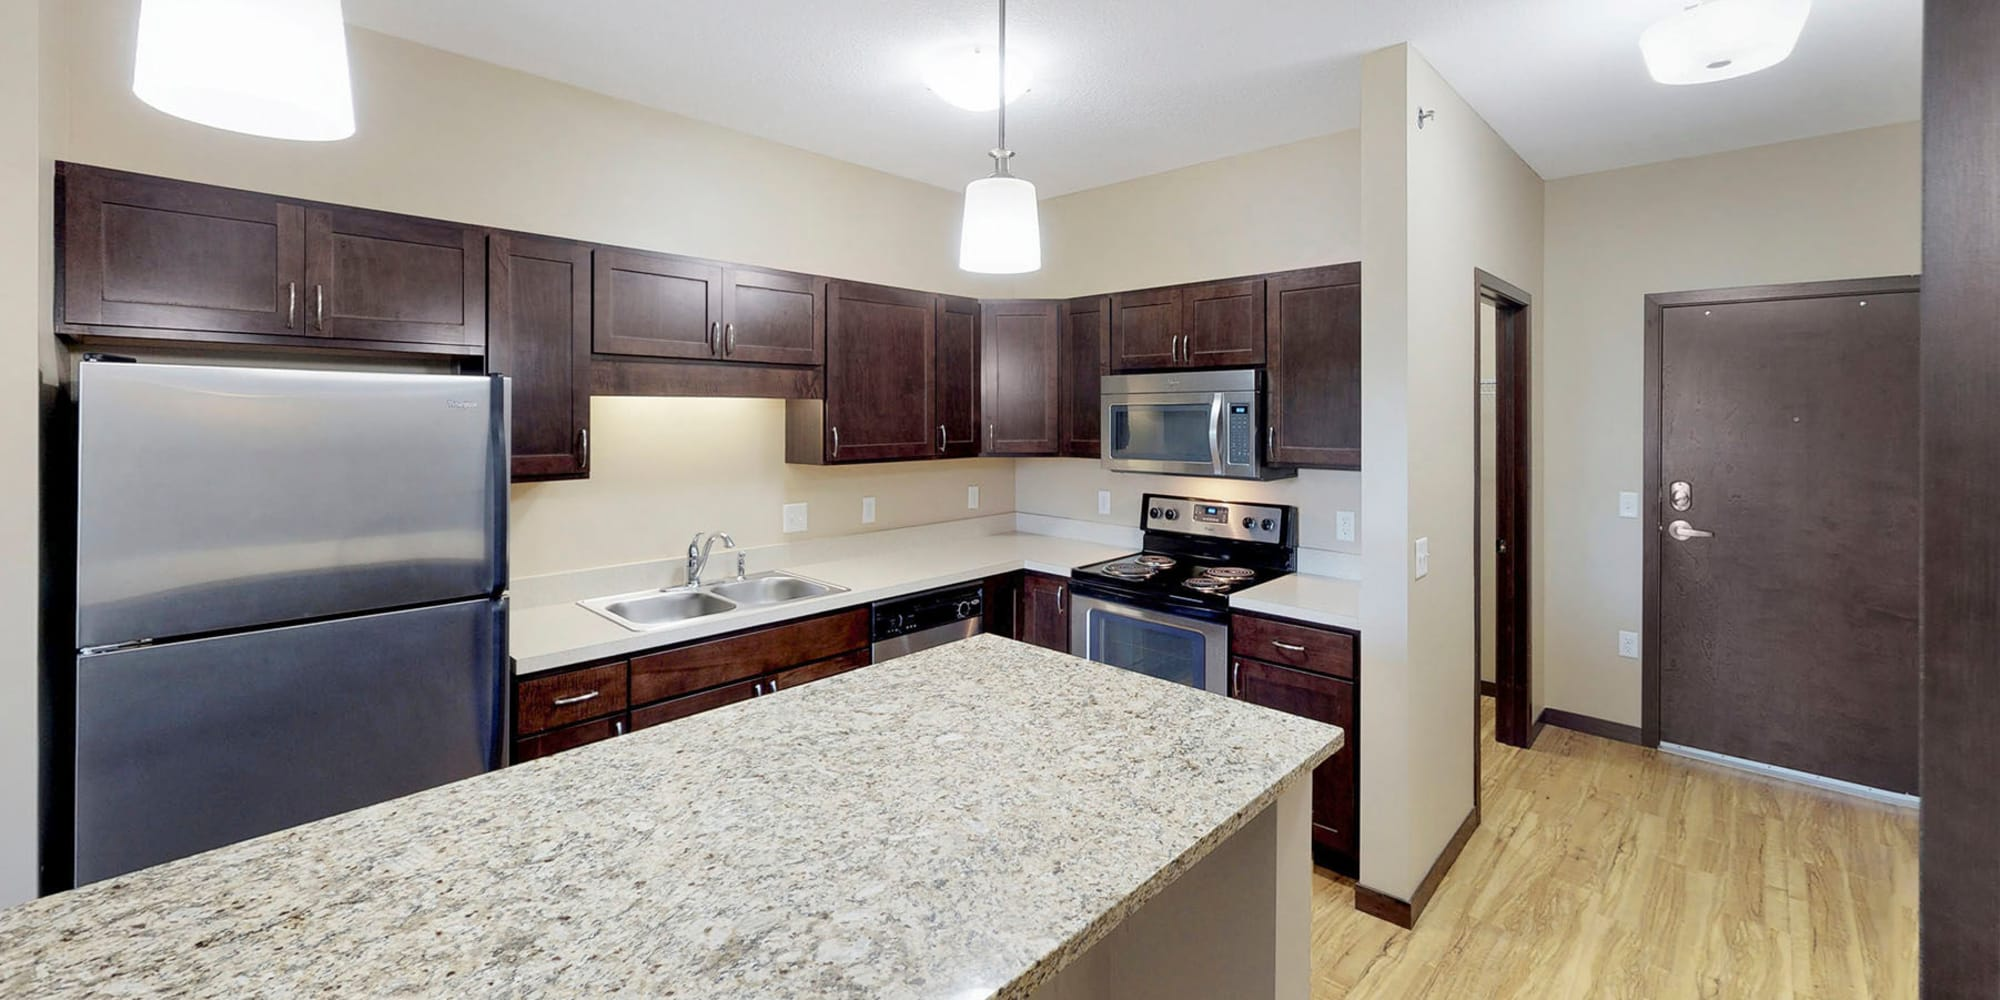 Luxury apartments at Oaks Station Place in Minneapolis, Minnesota